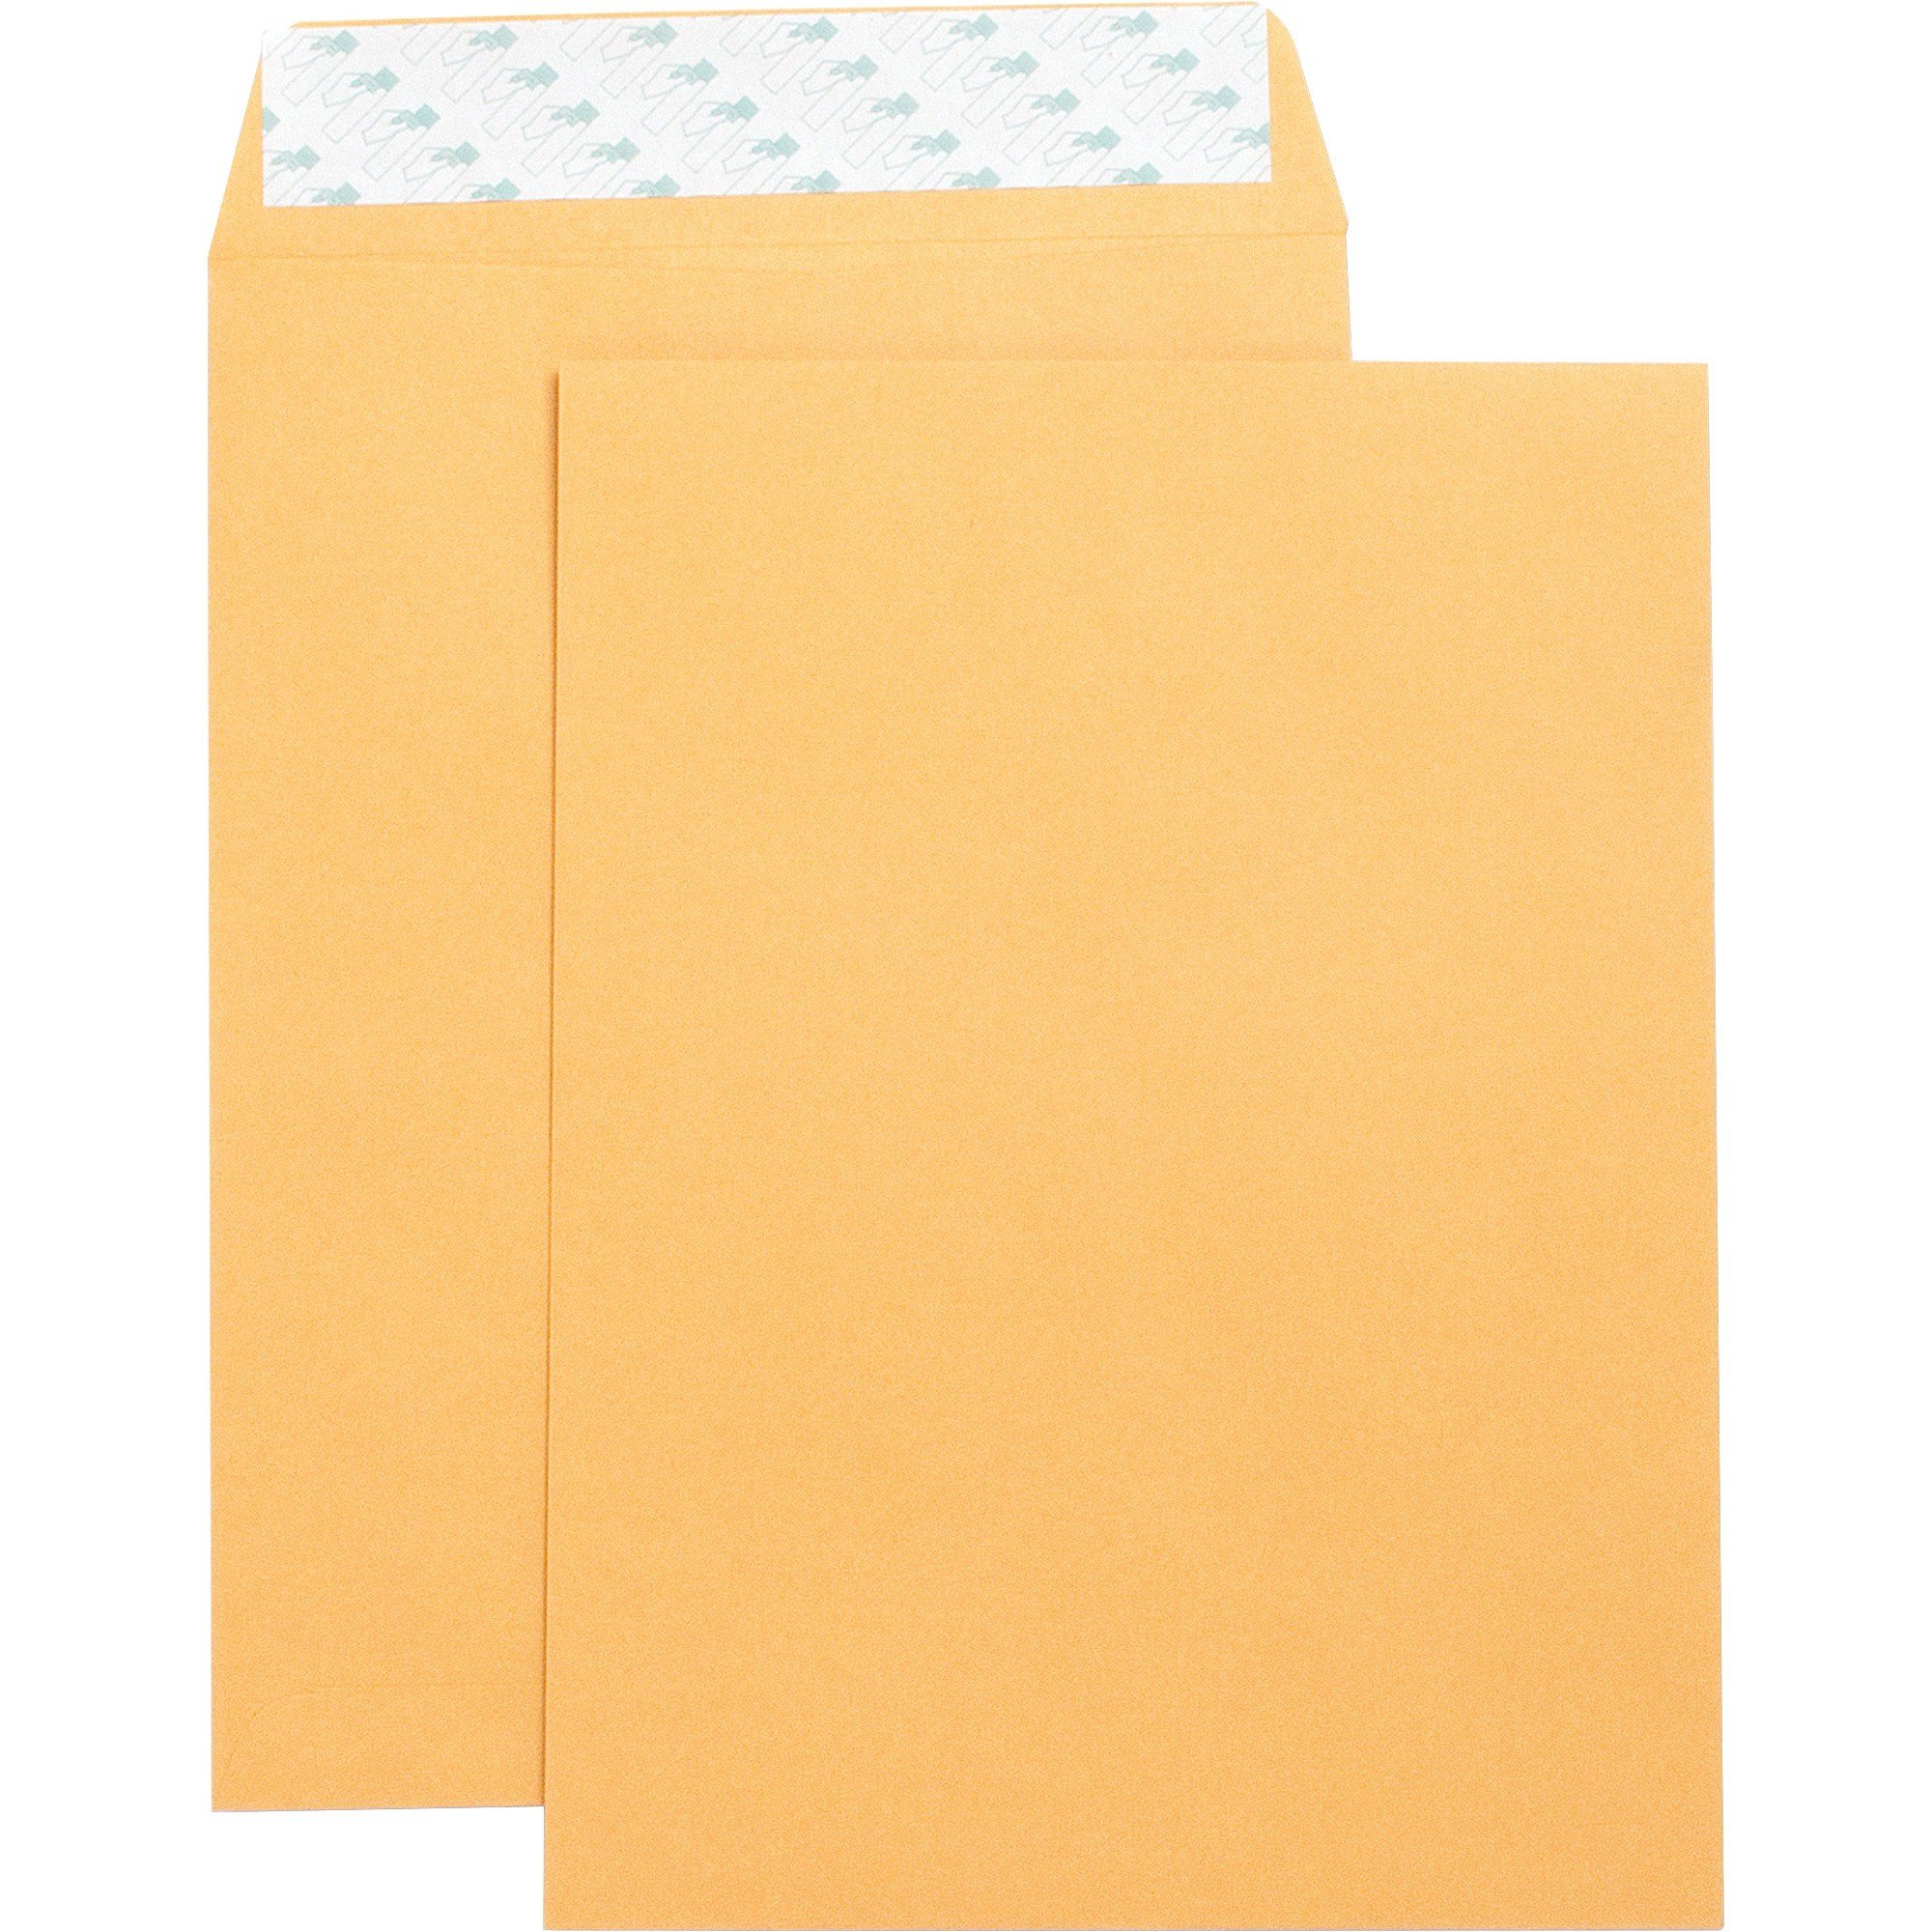 "Business Source Self Adhesive Kraft 9"" x 12"" Catalog Envelopes -250/Box"